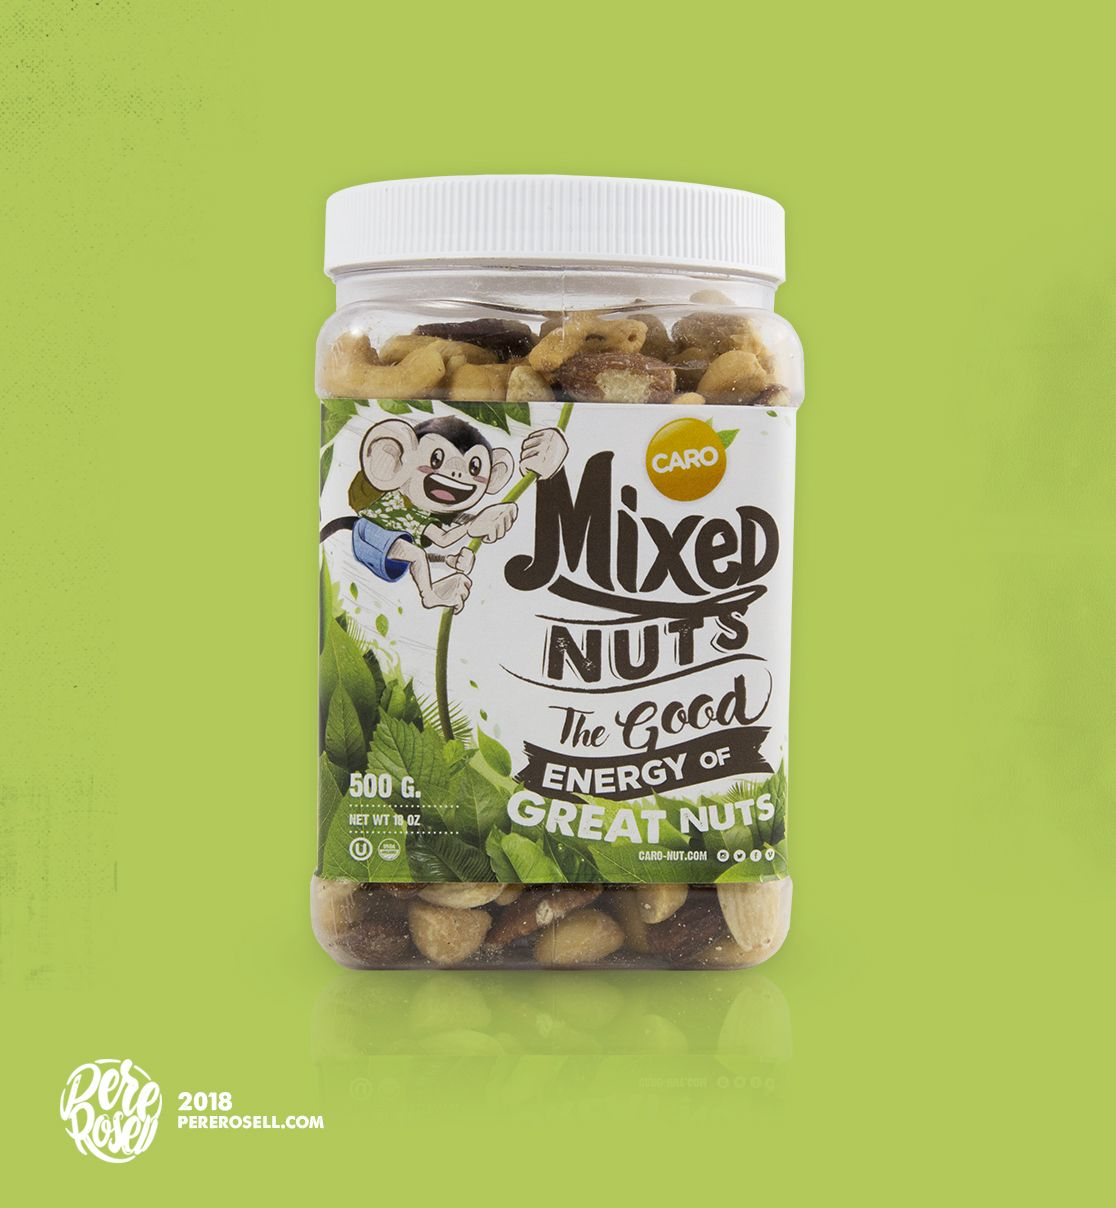 Download A Package Design For Caro Nut Mixed Nuts Packaging Mixed Nuts Nuts